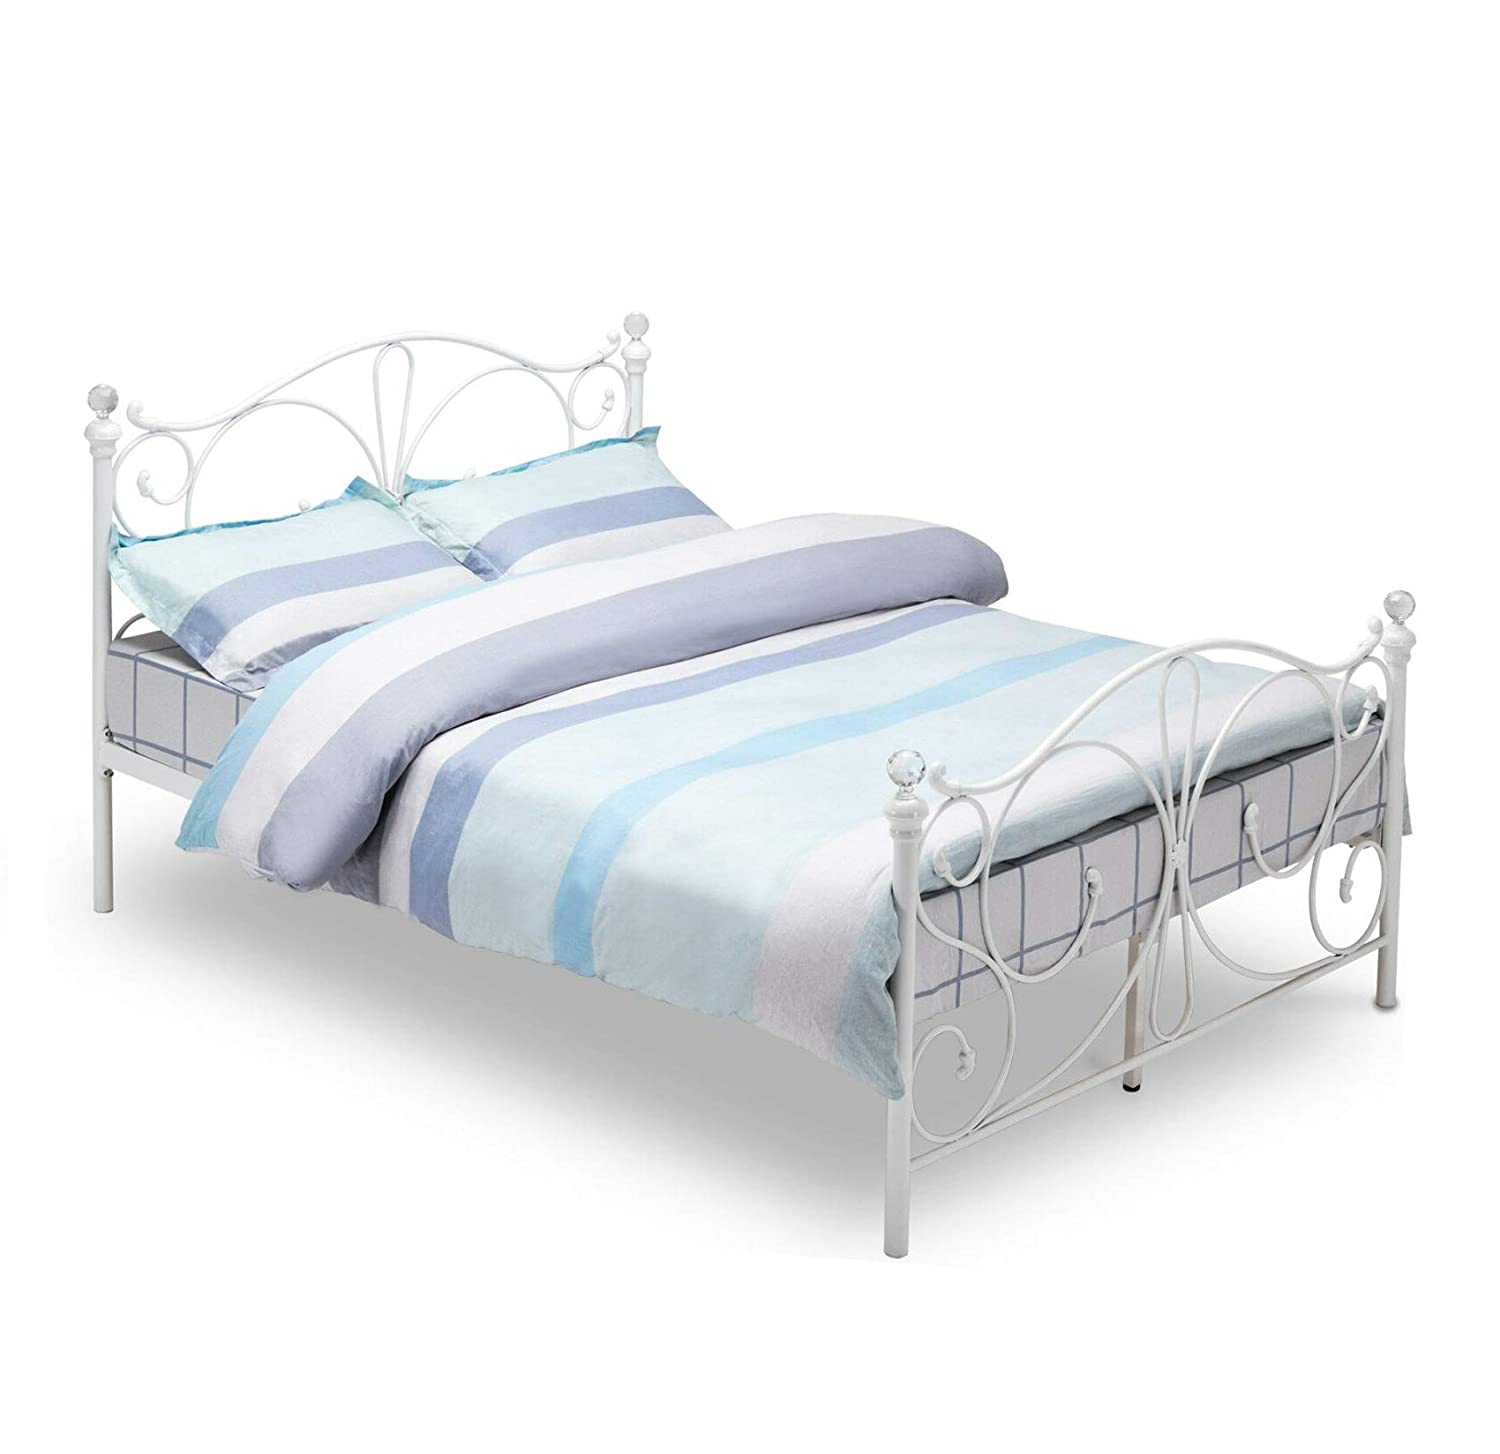 Mecor Double White Metal Bed Frame Crystal Finials with Headboard Footboard and Wooden Slat Support (4FT)